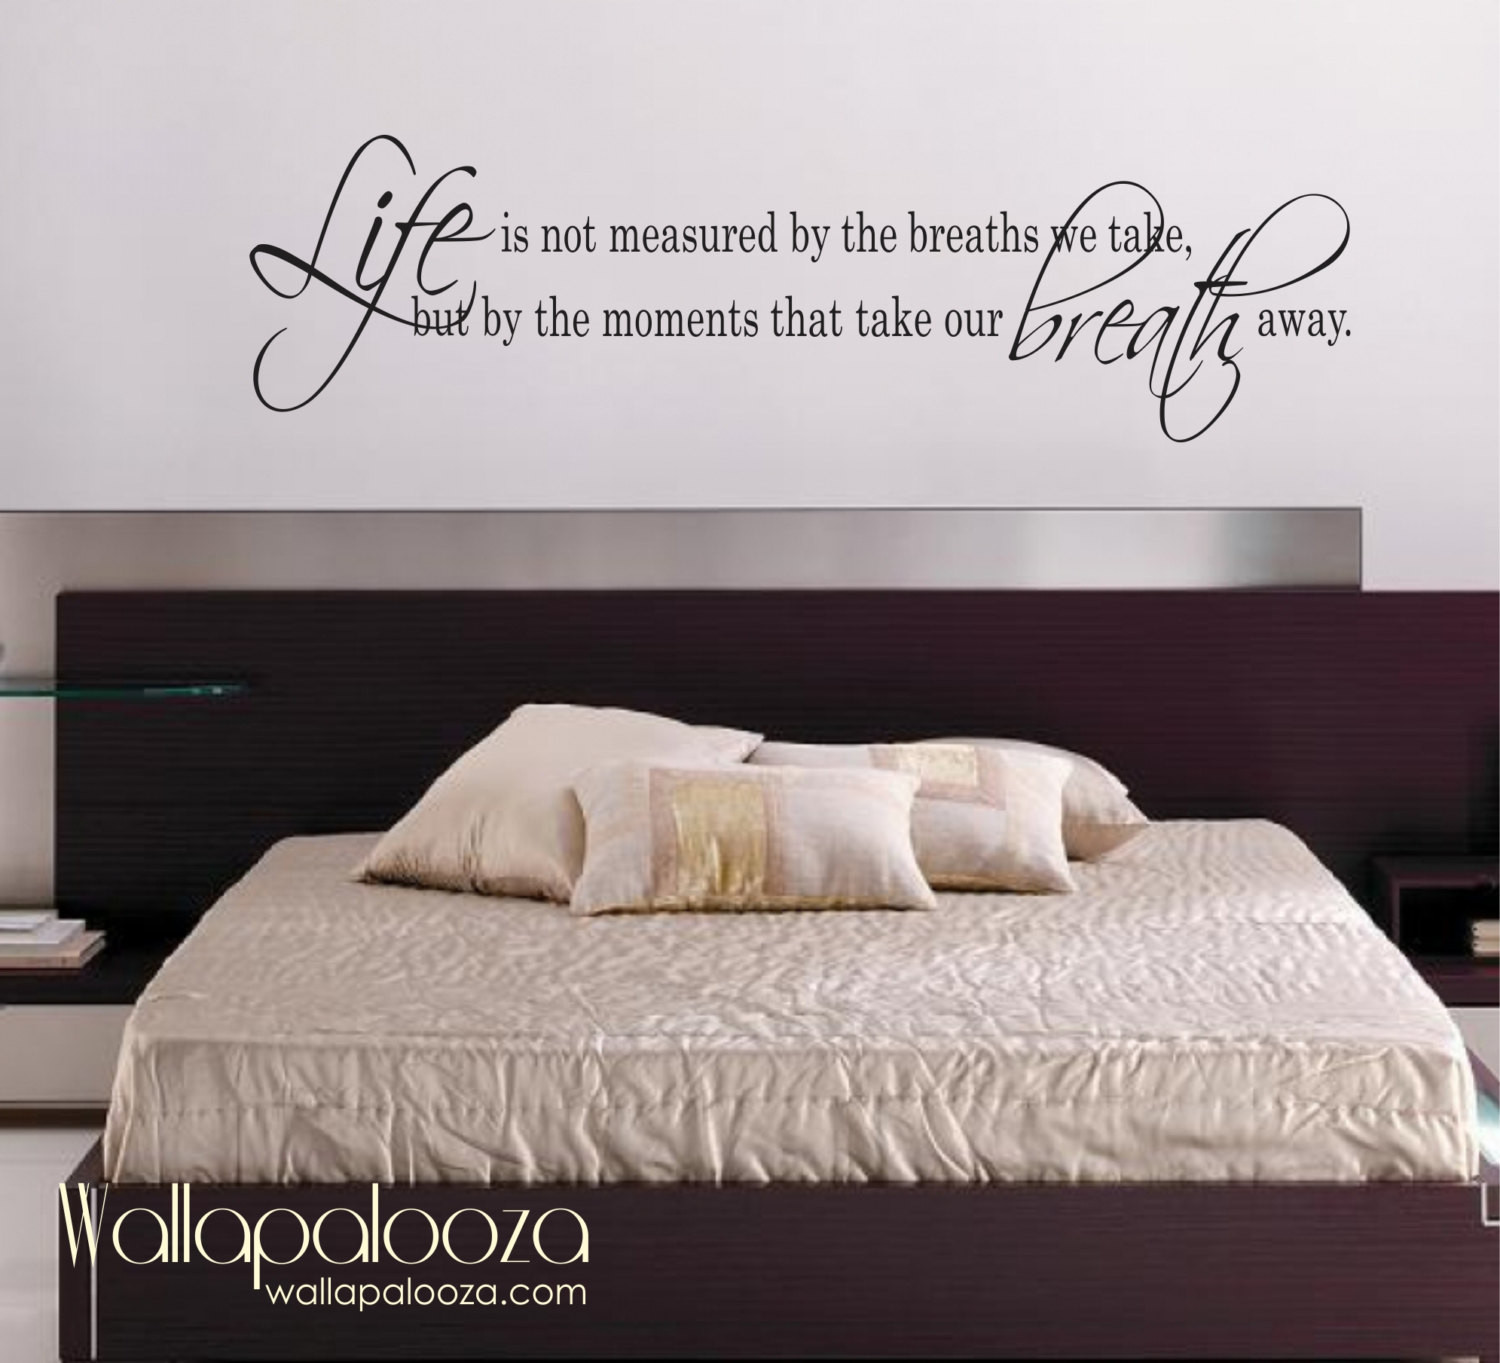 Best ideas about Wall Decals For Bedroom . Save or Pin Life Is Not measured wall decal love wall decal bedroom Now.